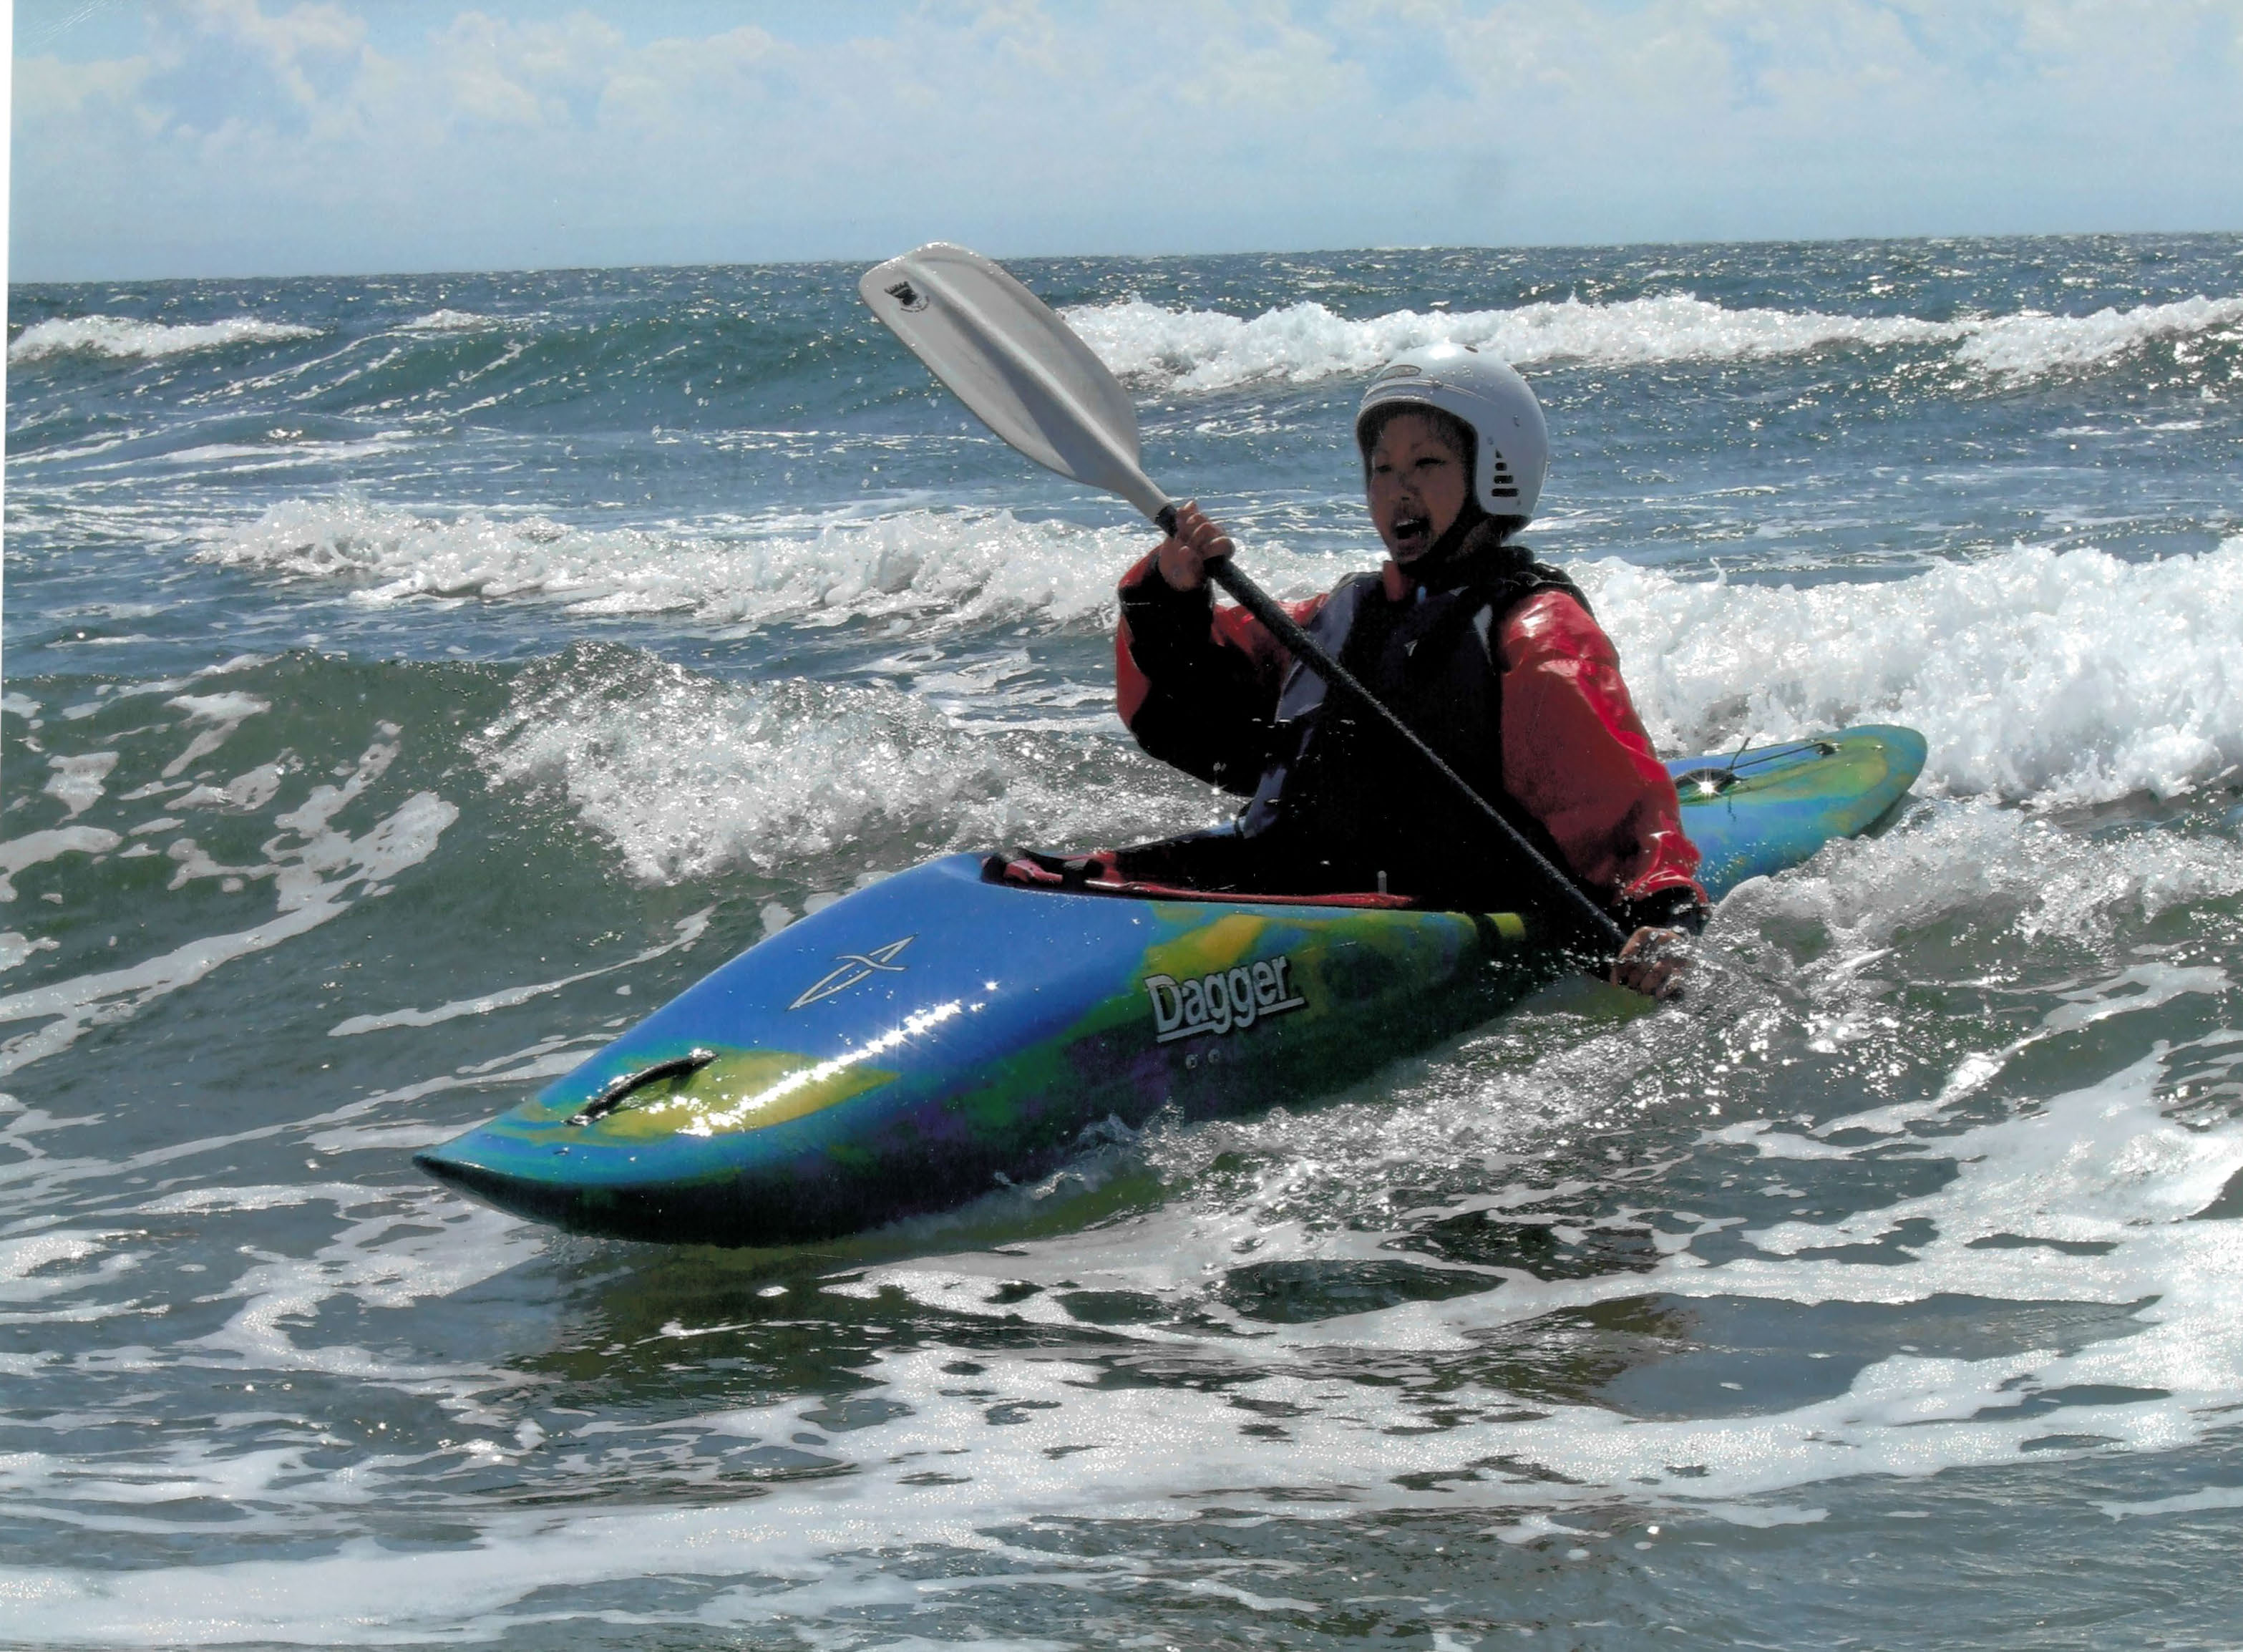 Canoe Surfing at Gower